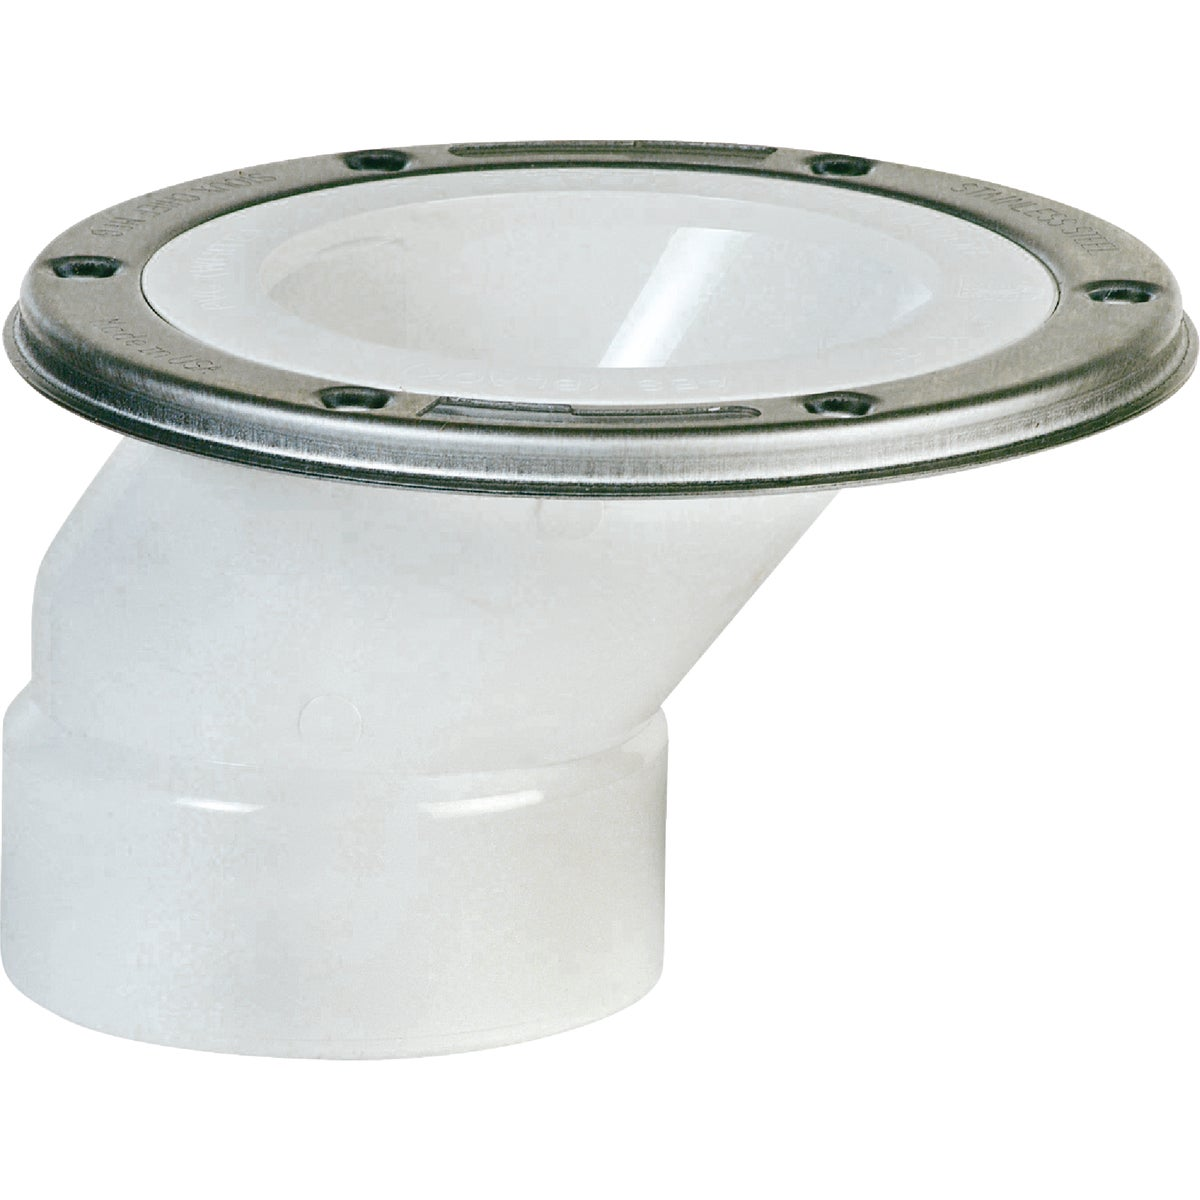 4X3 SS PVC OFFSET FLANGE - 889-POM by Sioux Chief Mfg